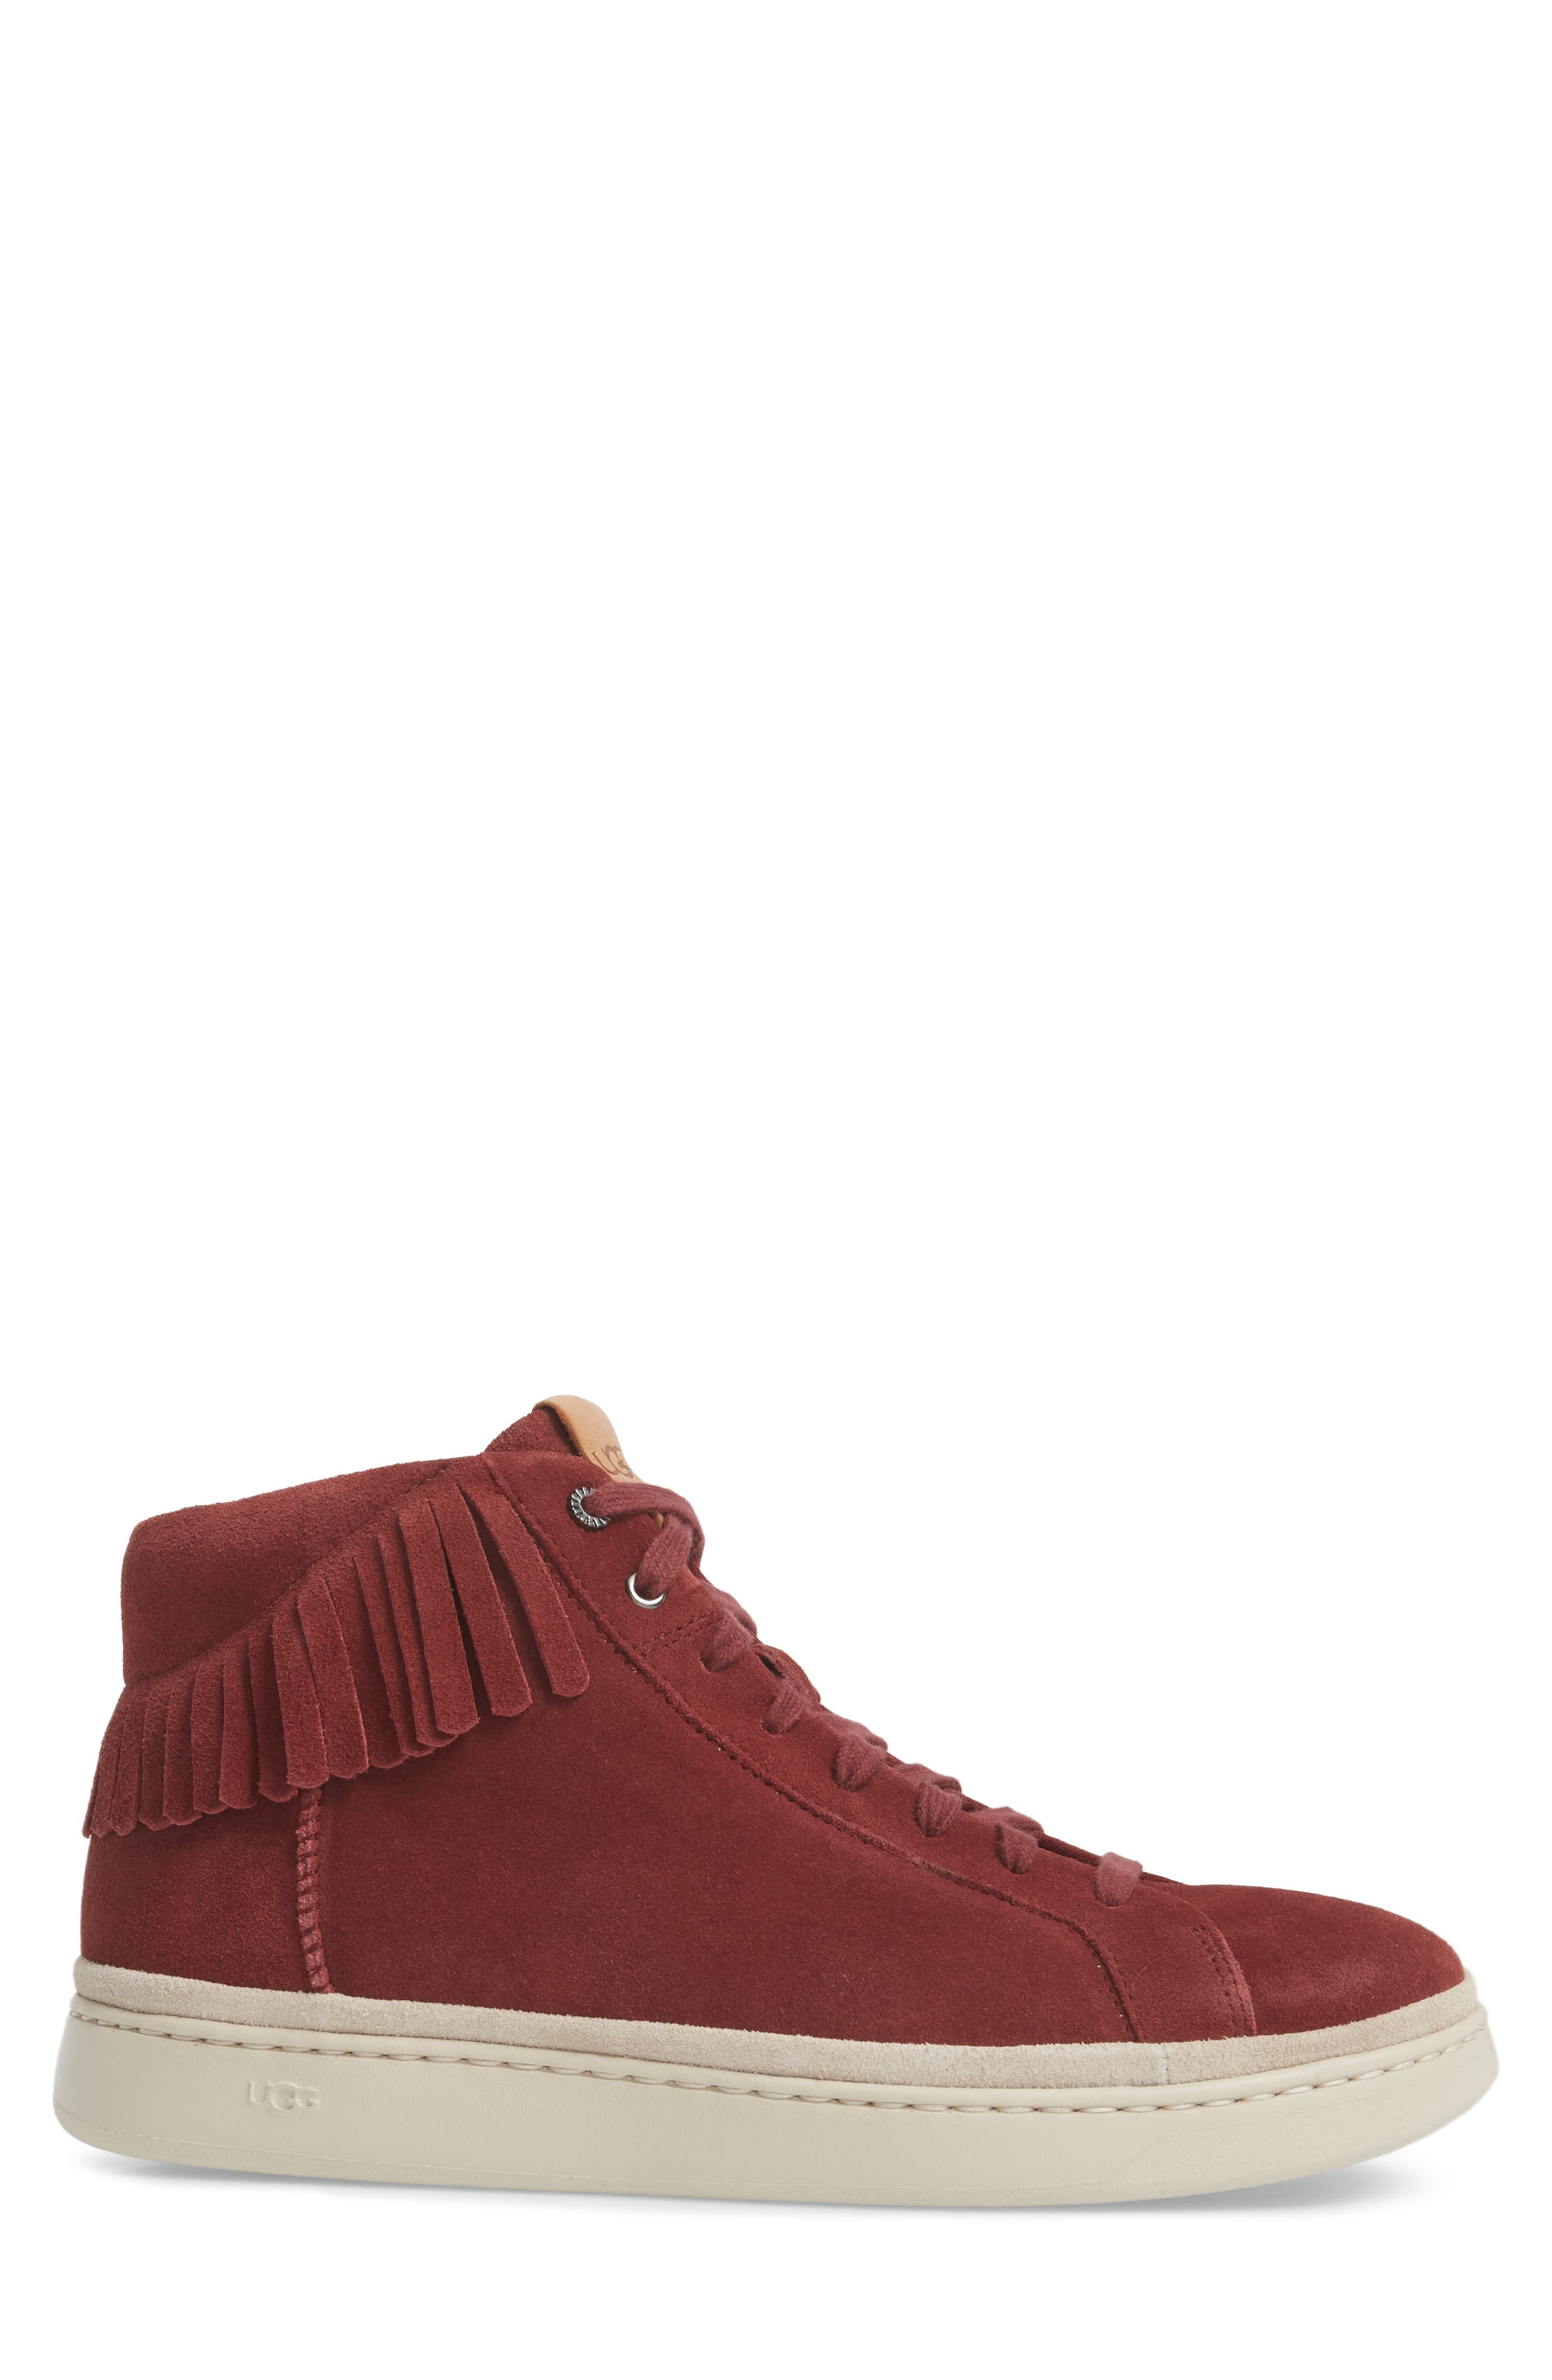 Brecken Fringe High-Top Sneaker,                             Alternate thumbnail 3, color,                             Pinot Noir Leather